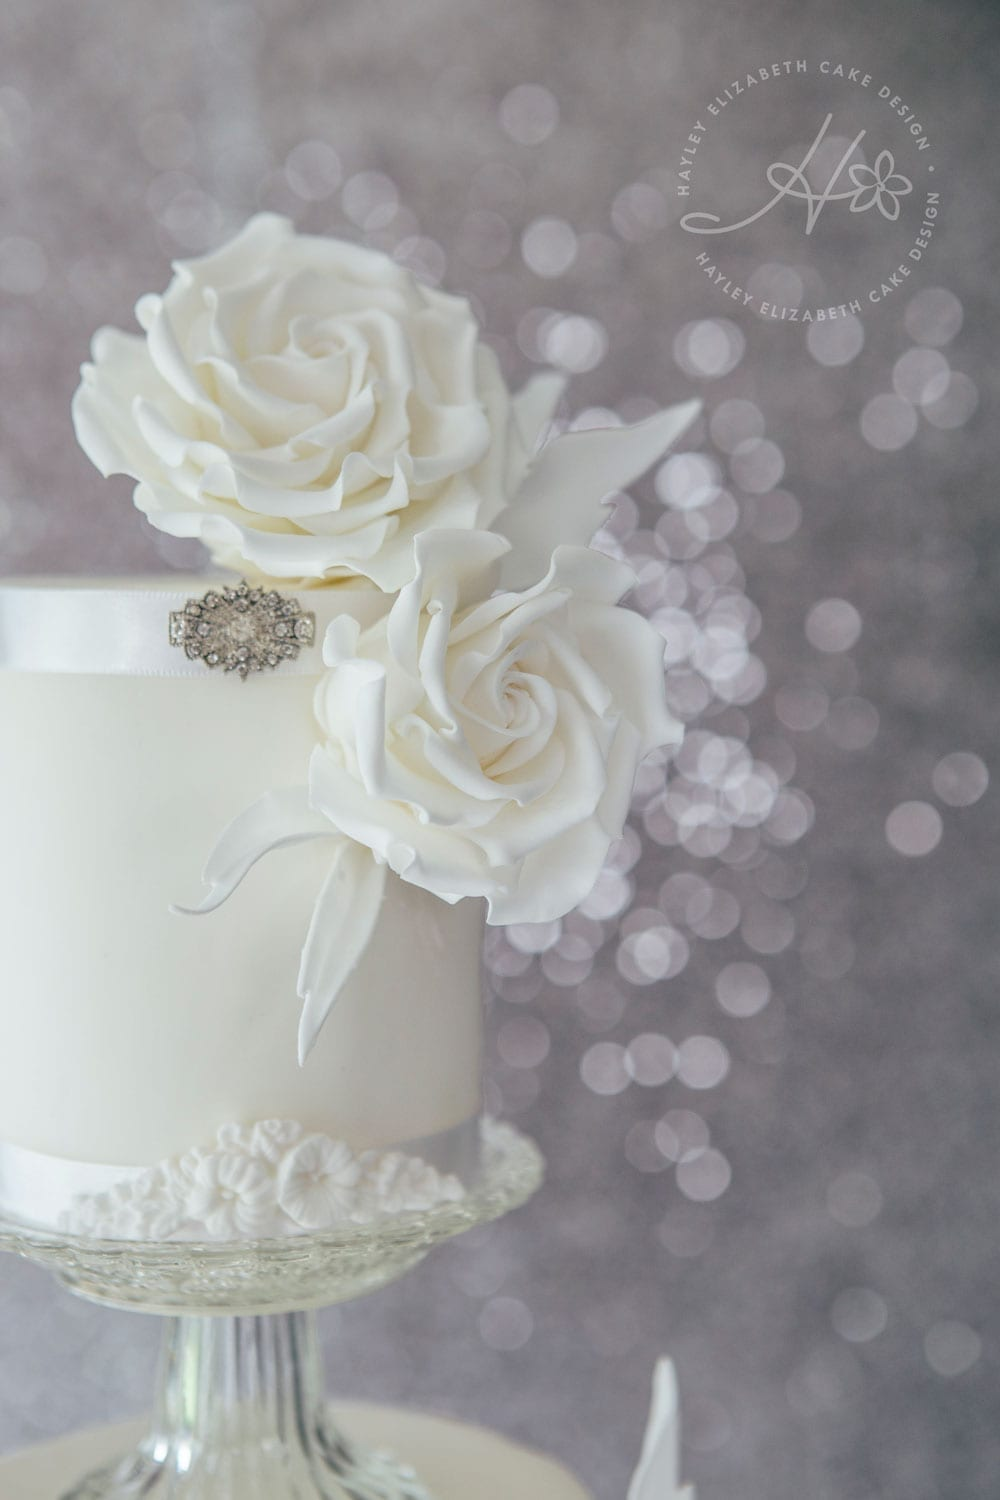 All white wedding cake, luxury wedding cake, elegant wedding cake, Hayley Elizabeth Cake Design, Dorset & Hampshire wedding cakes, sugar flowers, sugar roses, white on white wedding cake, wedding cake inspiration, wedding cake ideas